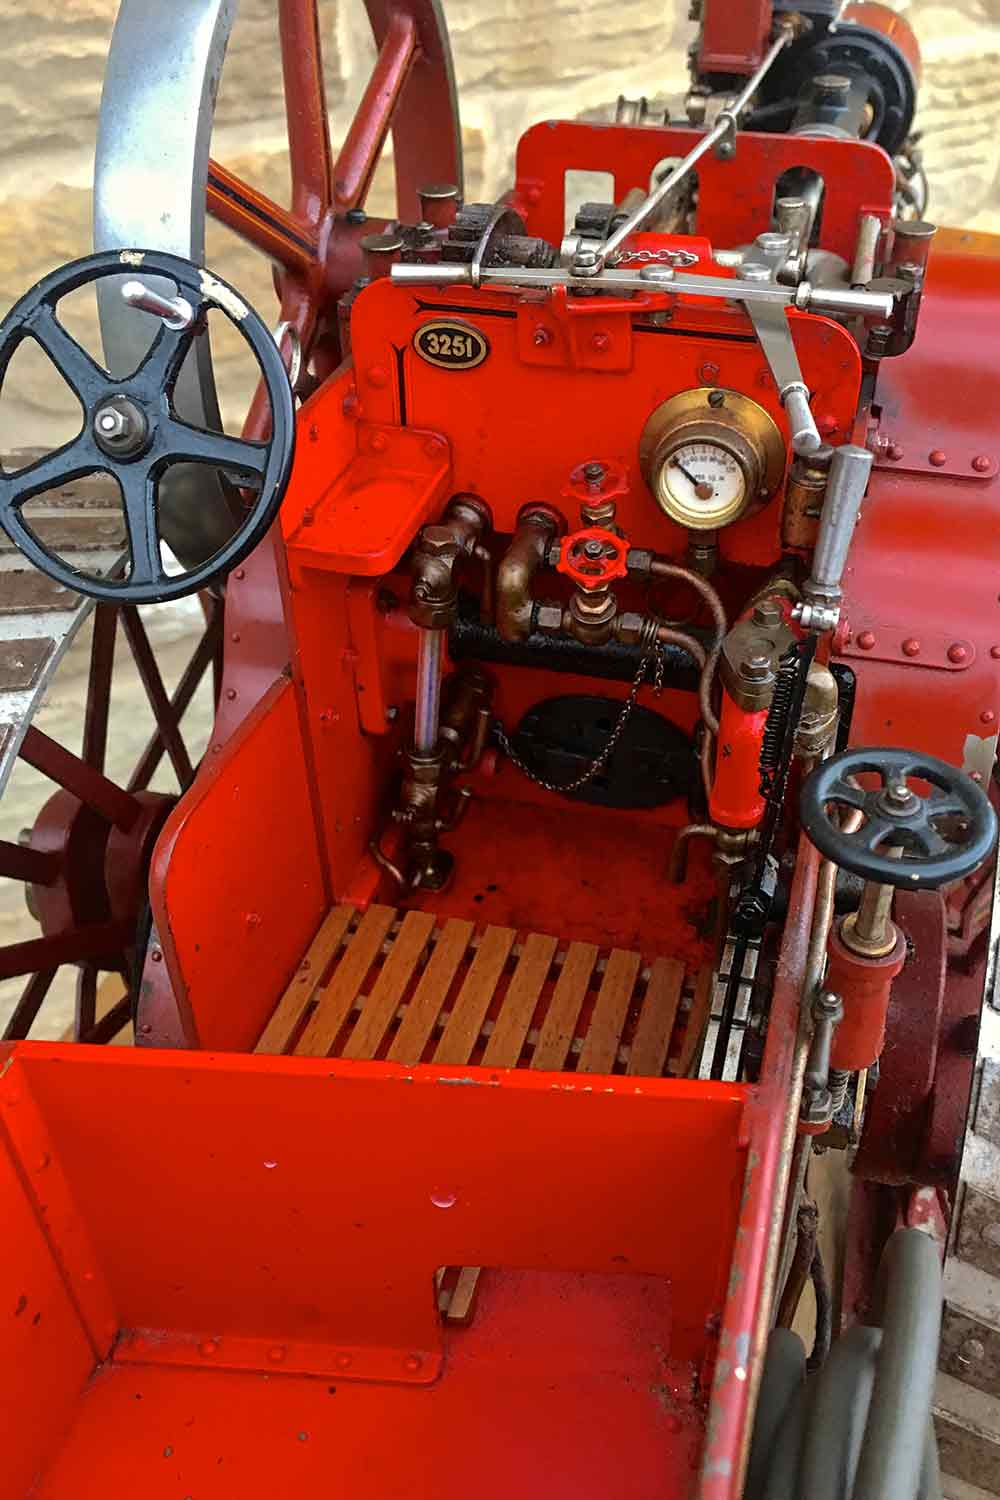 test Alchin-Traction-Engine-Royal-Chester-live-steam-model-for-sale-18